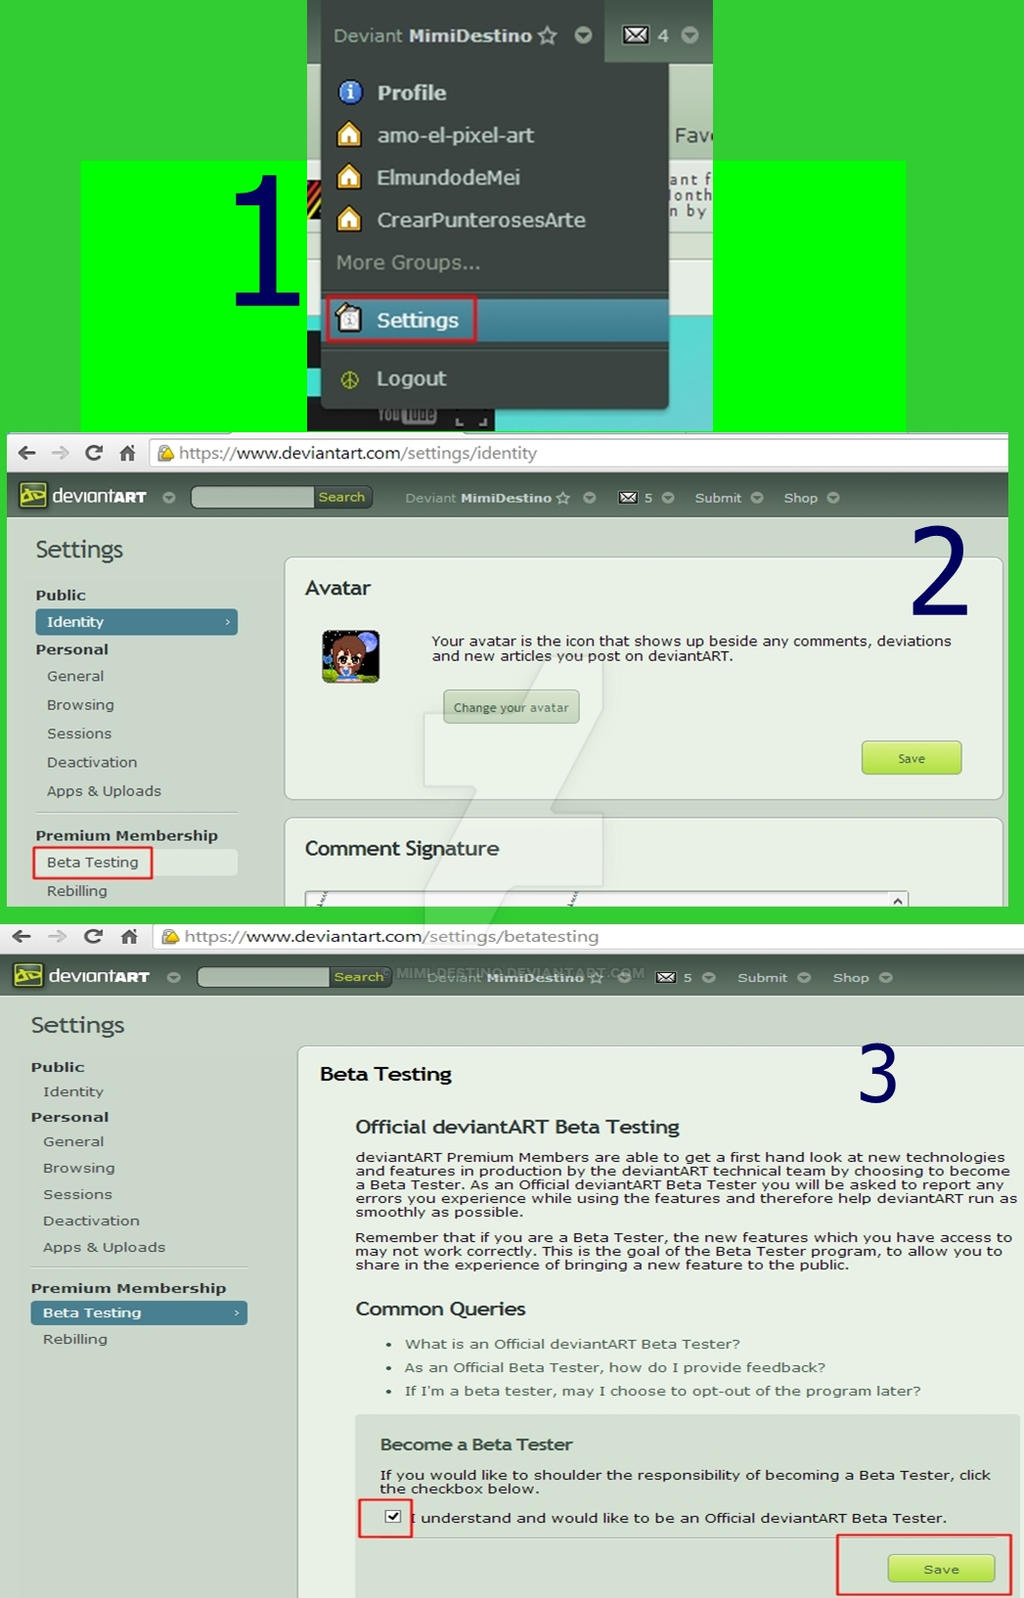 Steps For Be A Beta Tester by Mimi-Destino